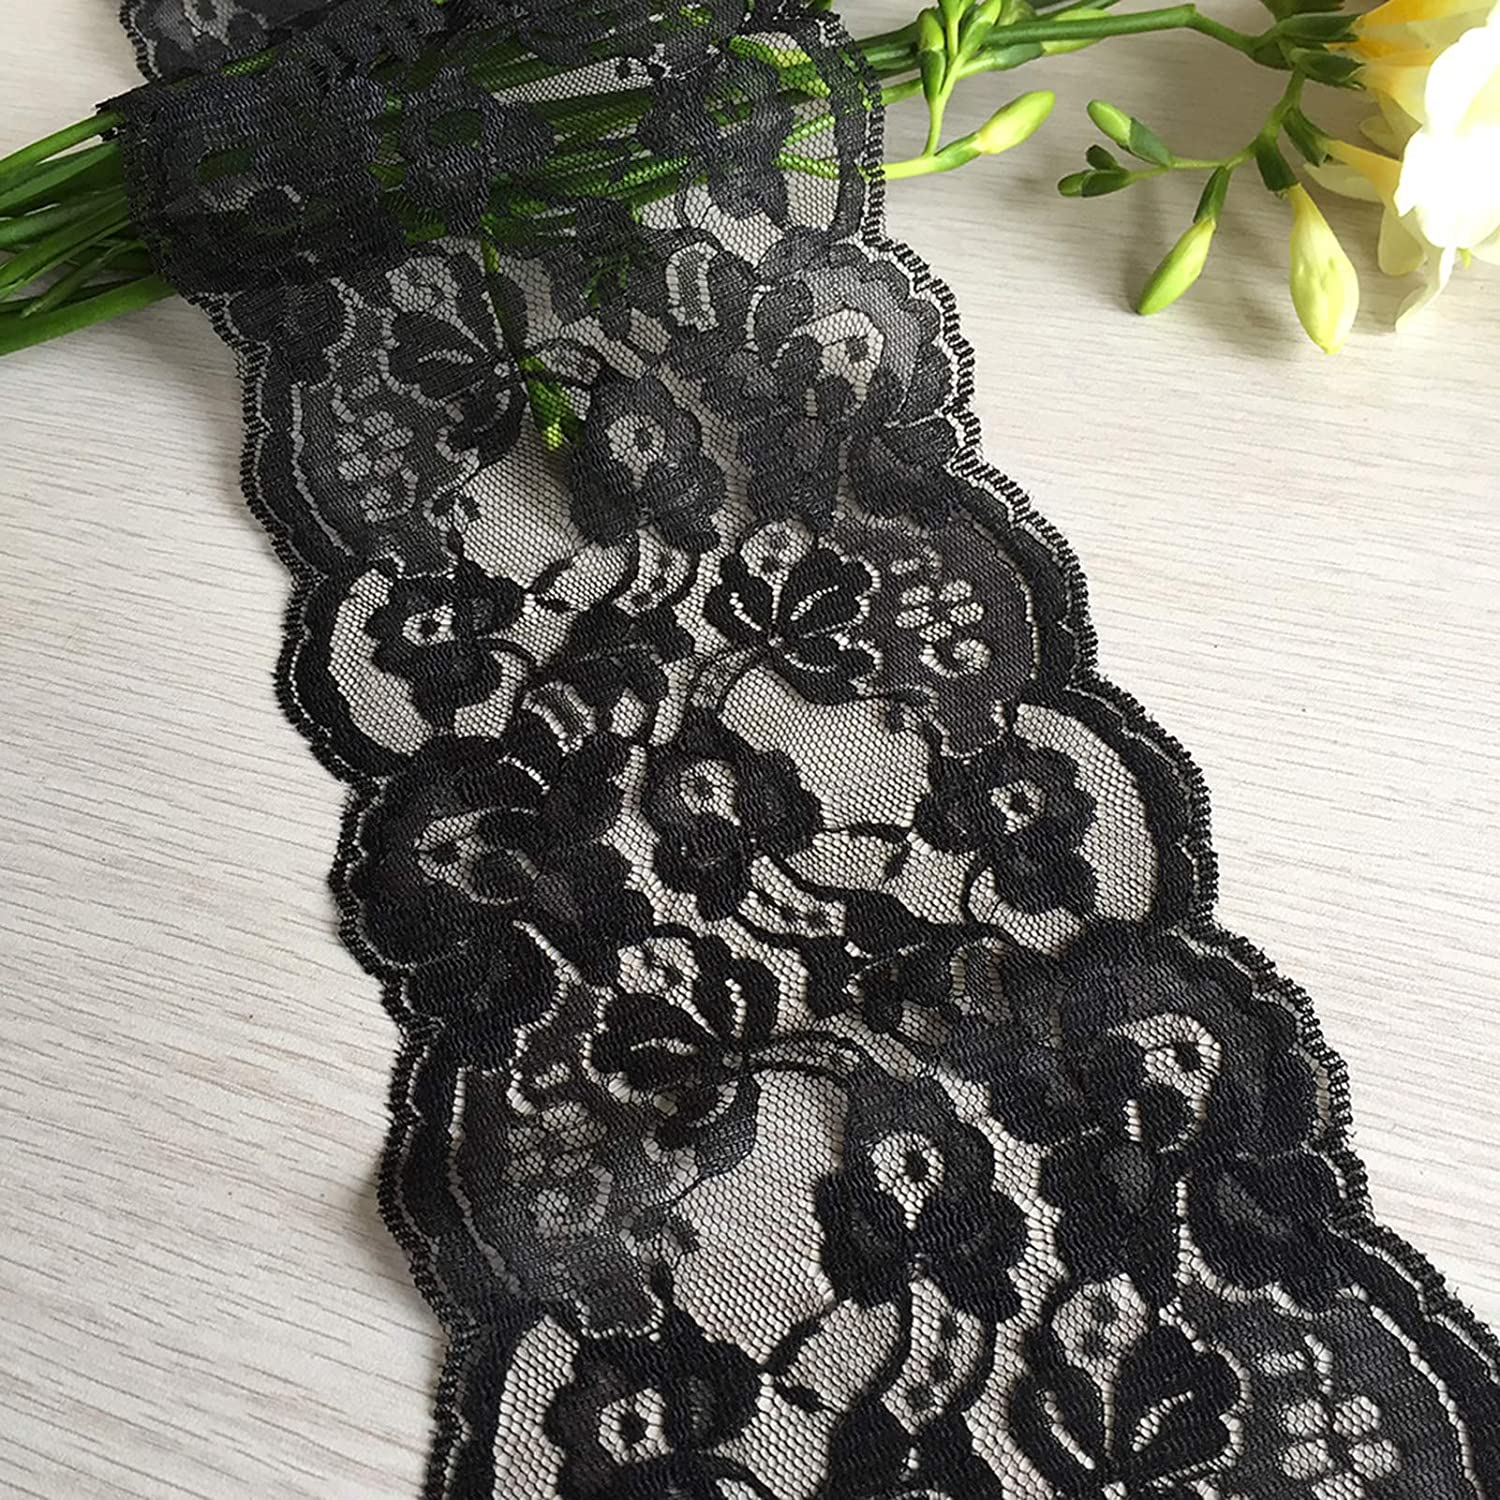 6822 Black LaceRealm 5.5 inch Wide Lace Trim Ribbon with Floral Pattern for Decorative Bridal Wedding Lace DIY Making Sewing Accessory-10 Yards